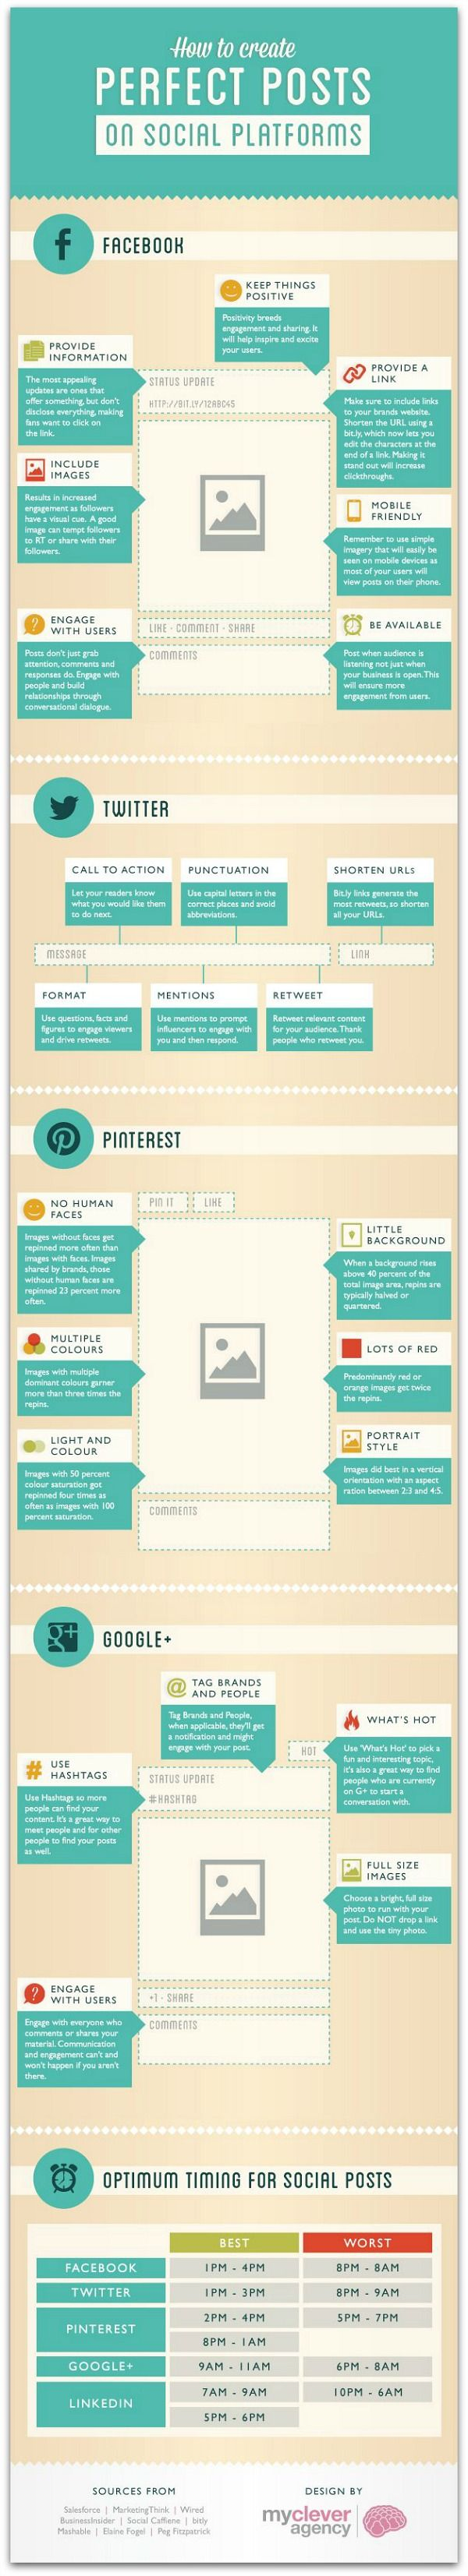 How to create perfect social media posts #infographic